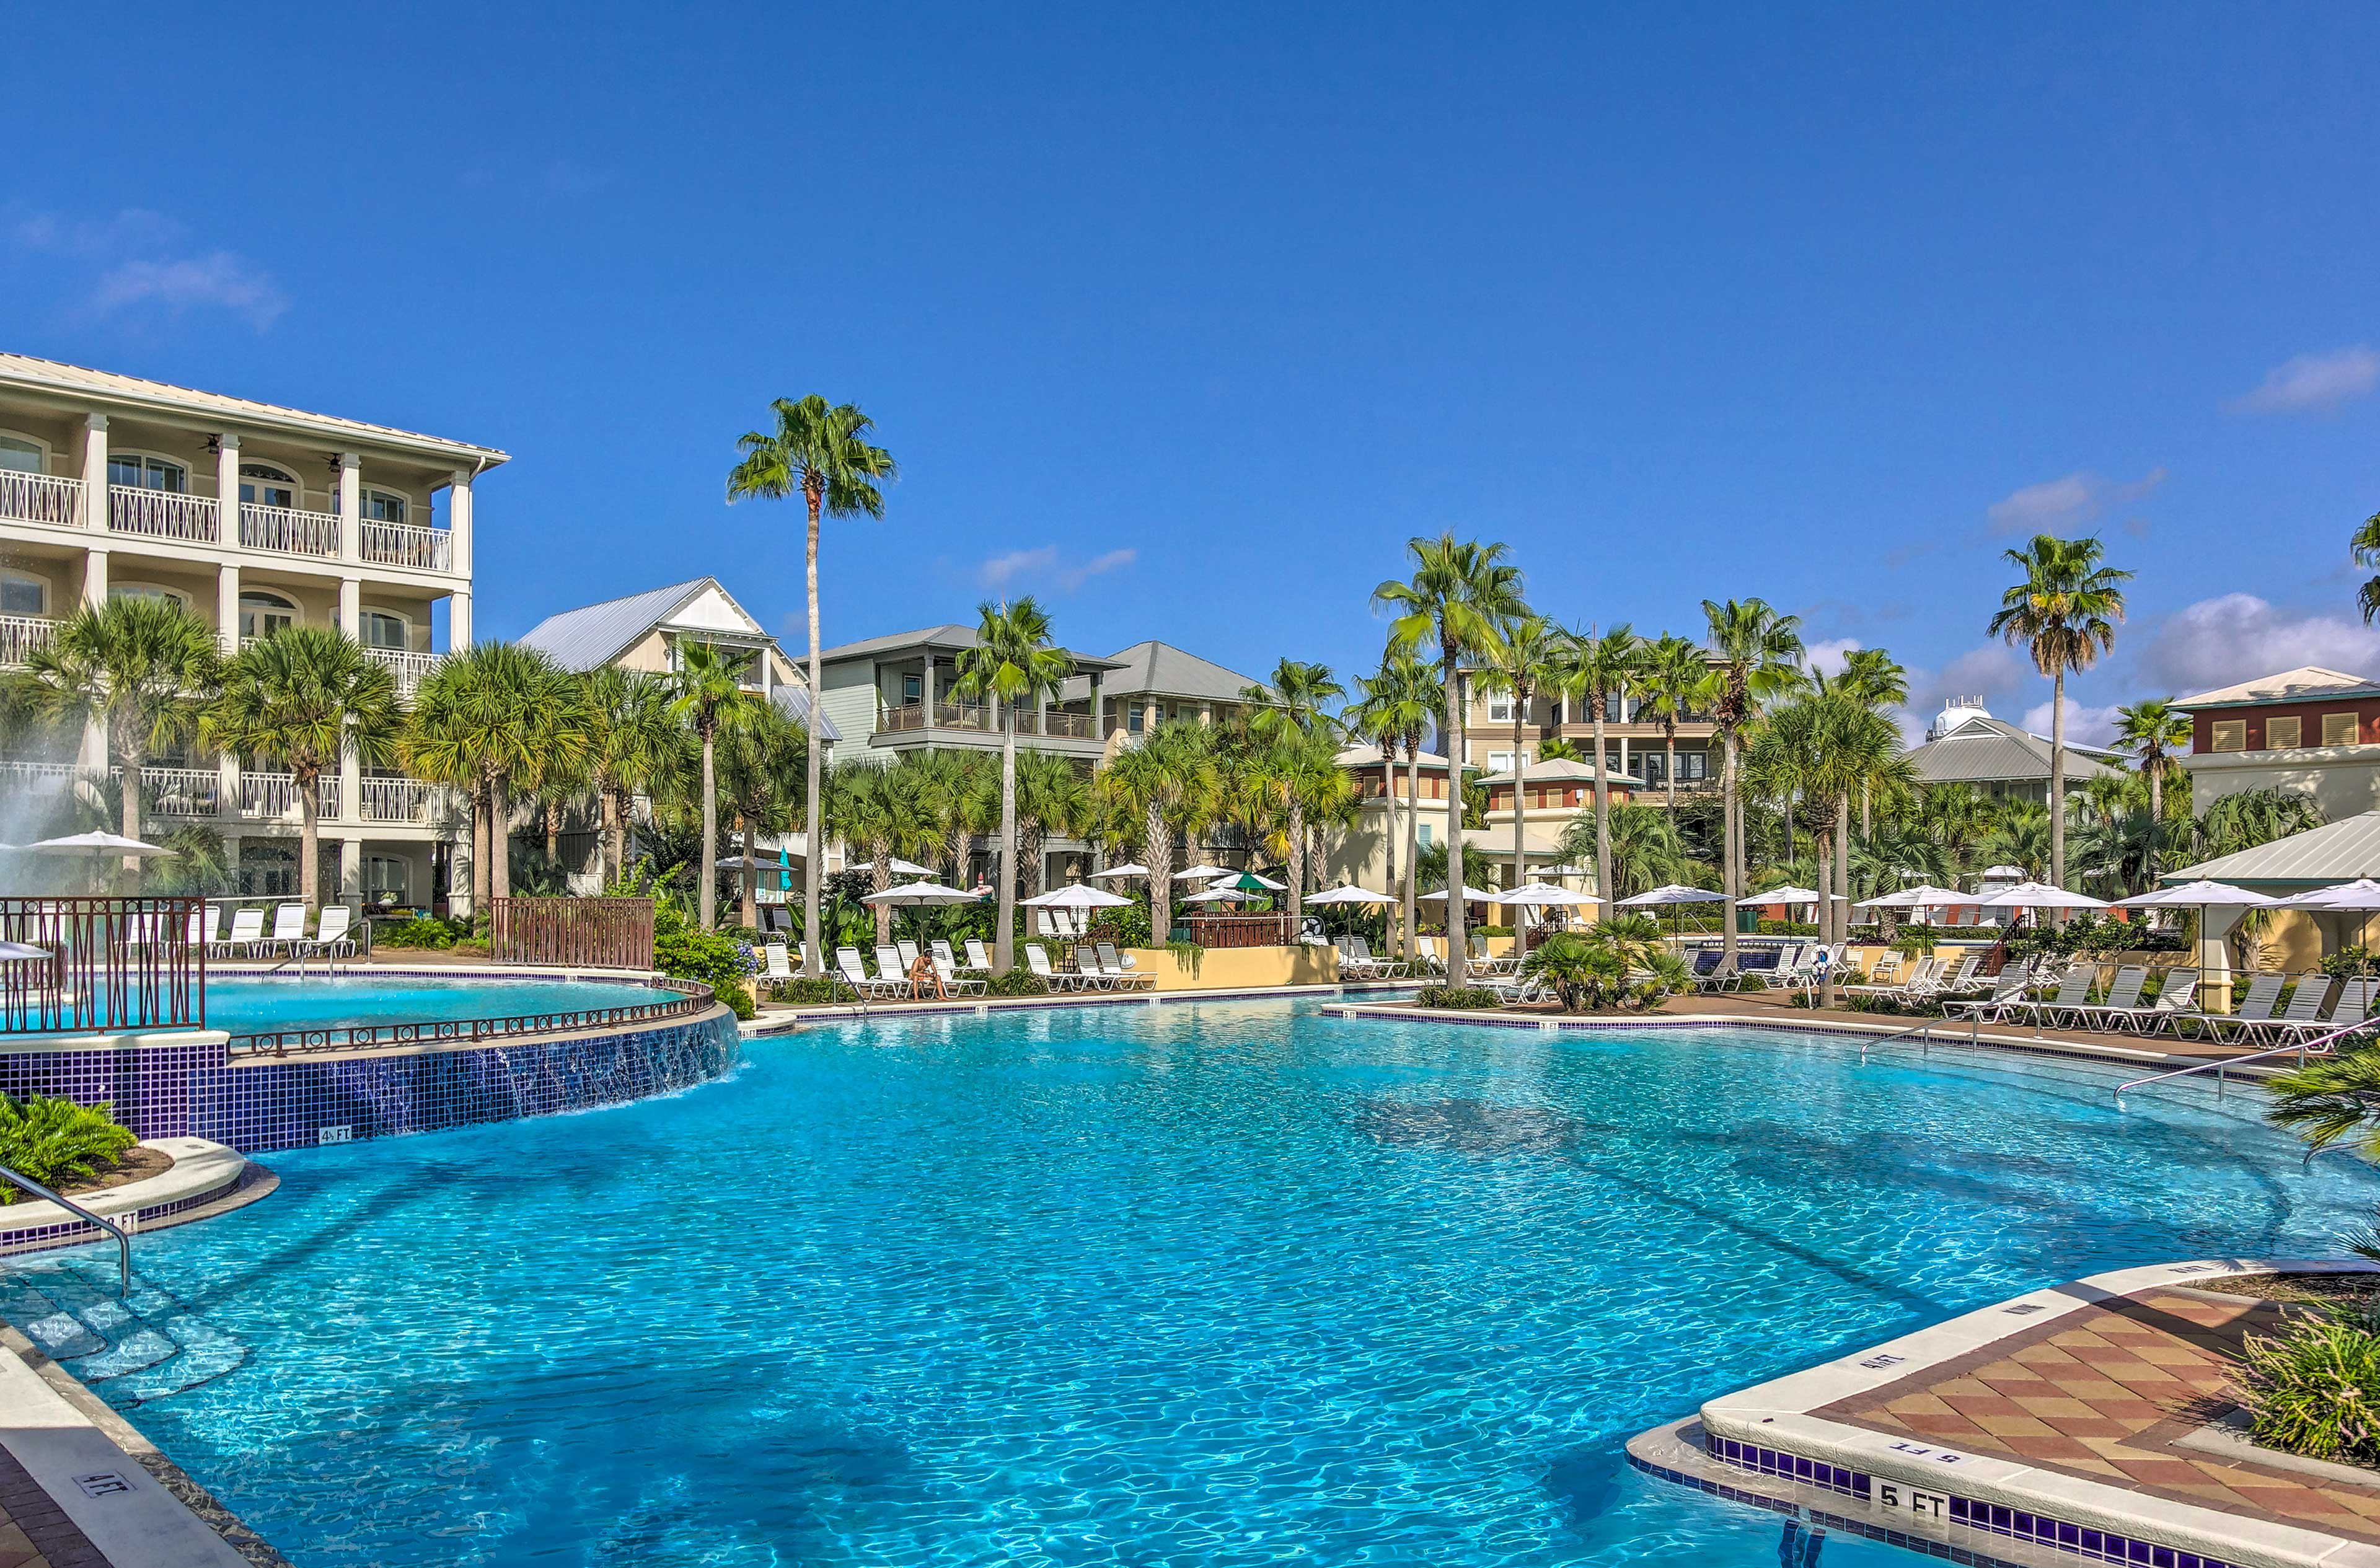 Lofty palm trees set the scene for your poolside escape.